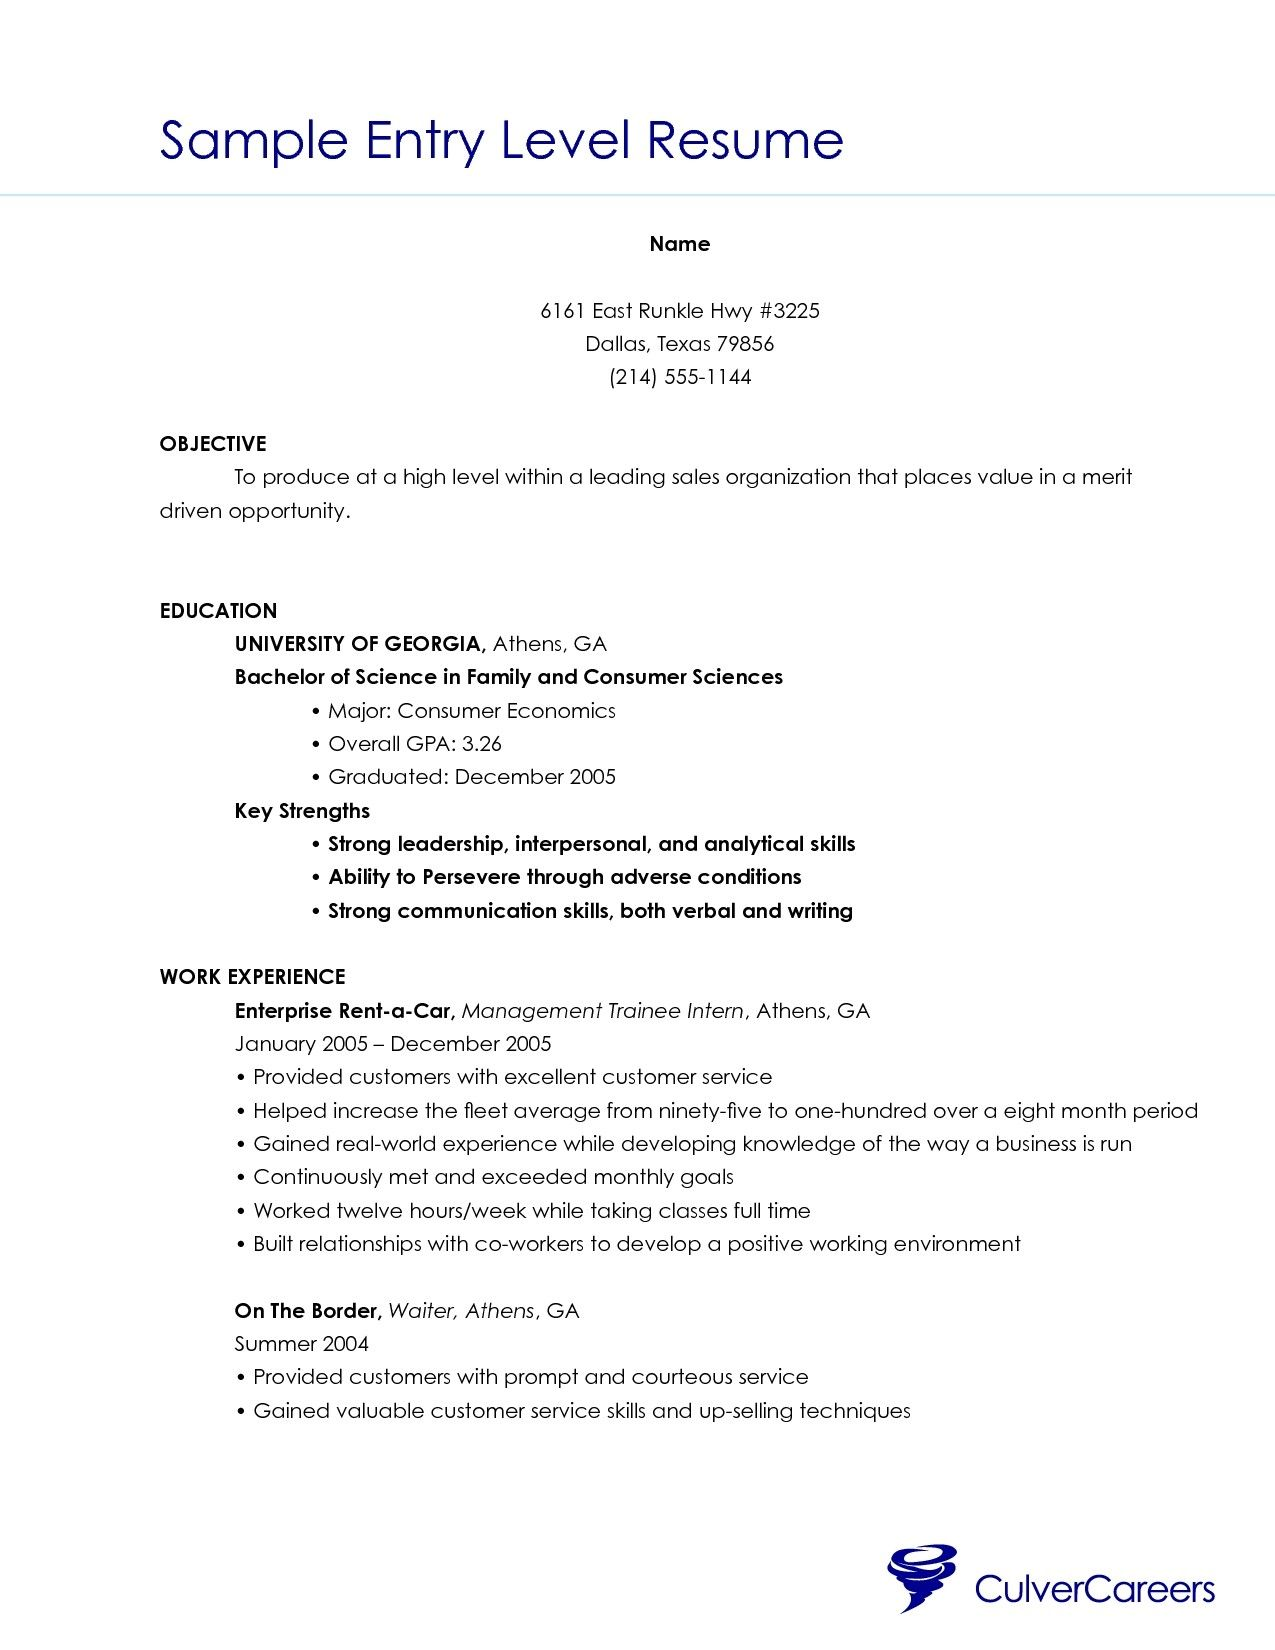 Resume Templates Beginner #beginner #resume #ResumeTemplates ...